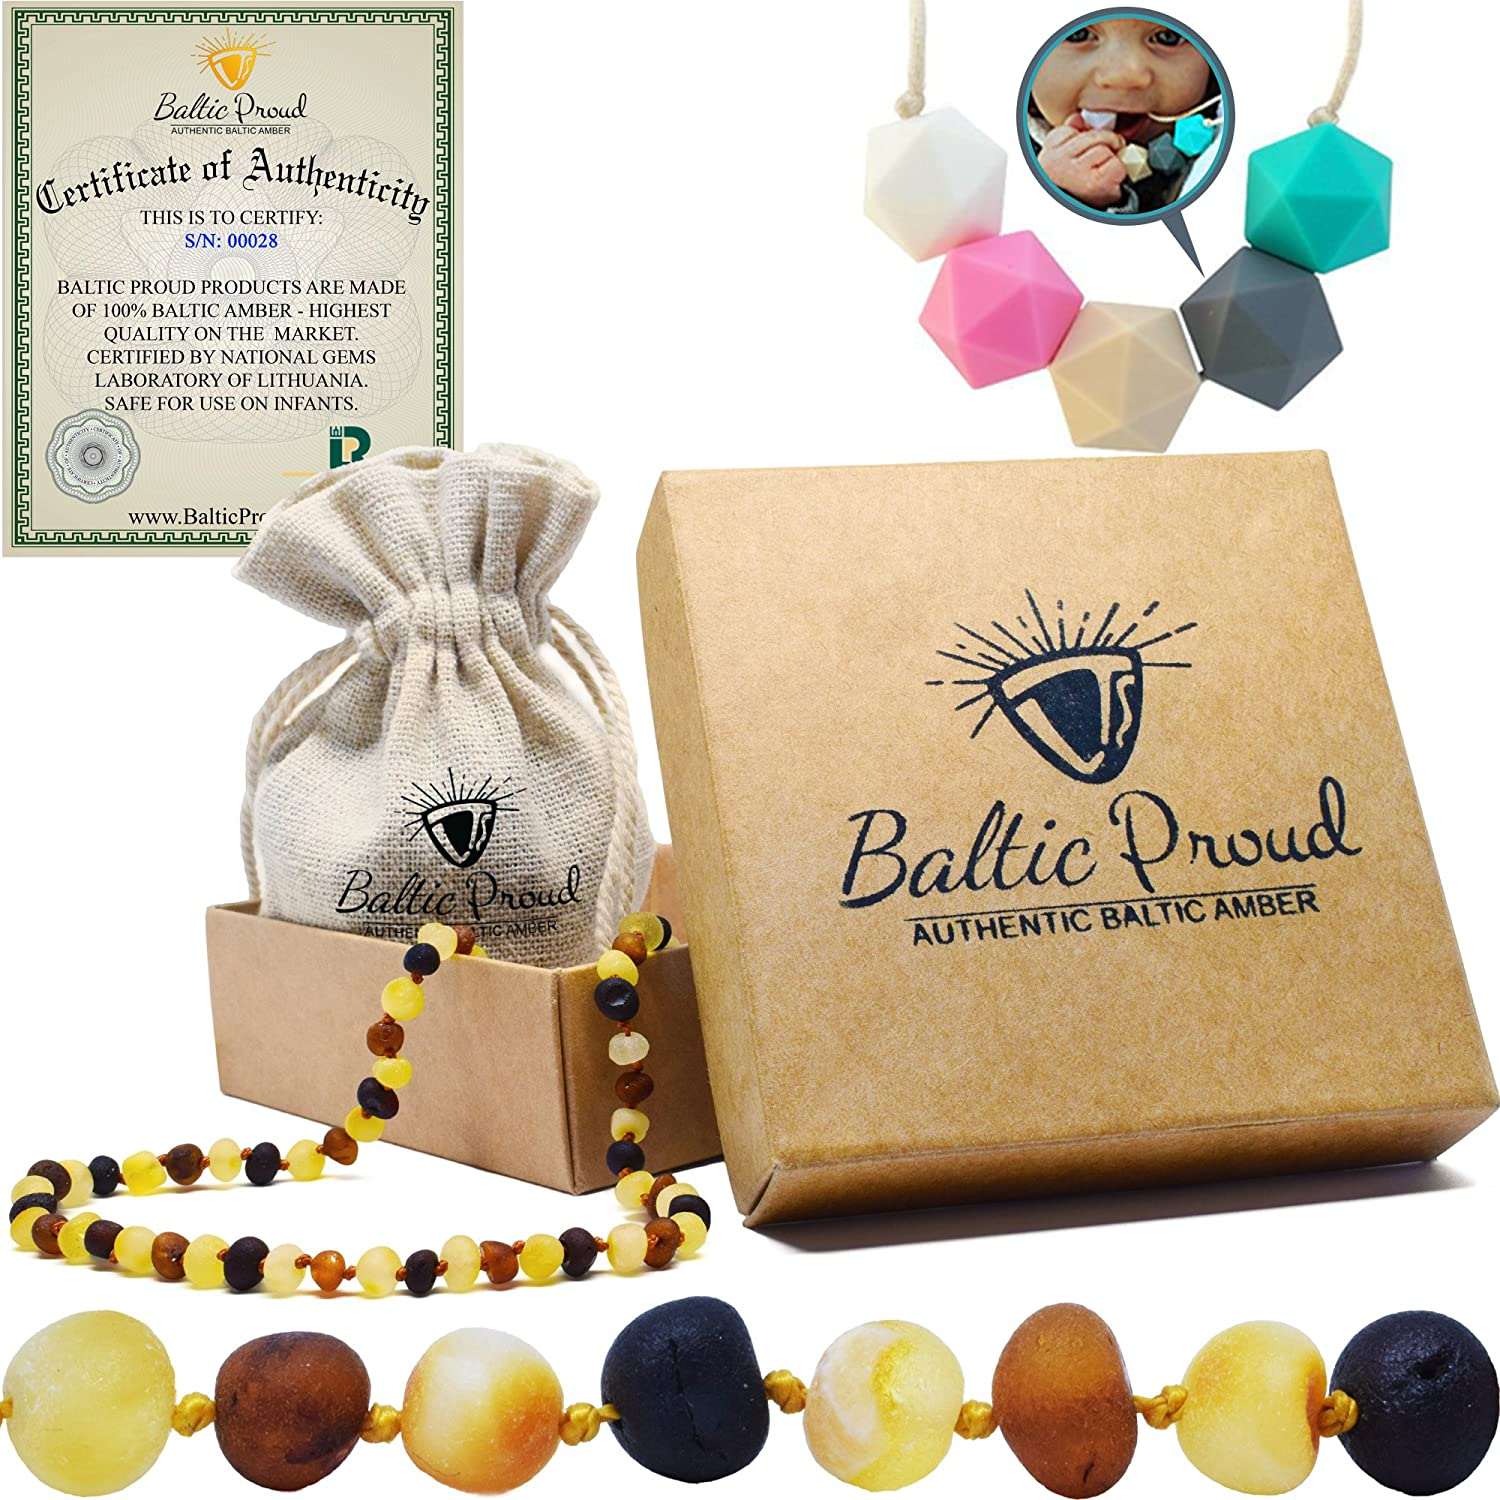 Amber Teething Necklace for Babies Gift Set (Unisex) + Silicone Teething Necklace - Anti Inflammatory, Natural Drooling and Teething Pain Relief, Highest Quality, Authentic Baltic Jewelry (Honey Raw) Baltic Proud